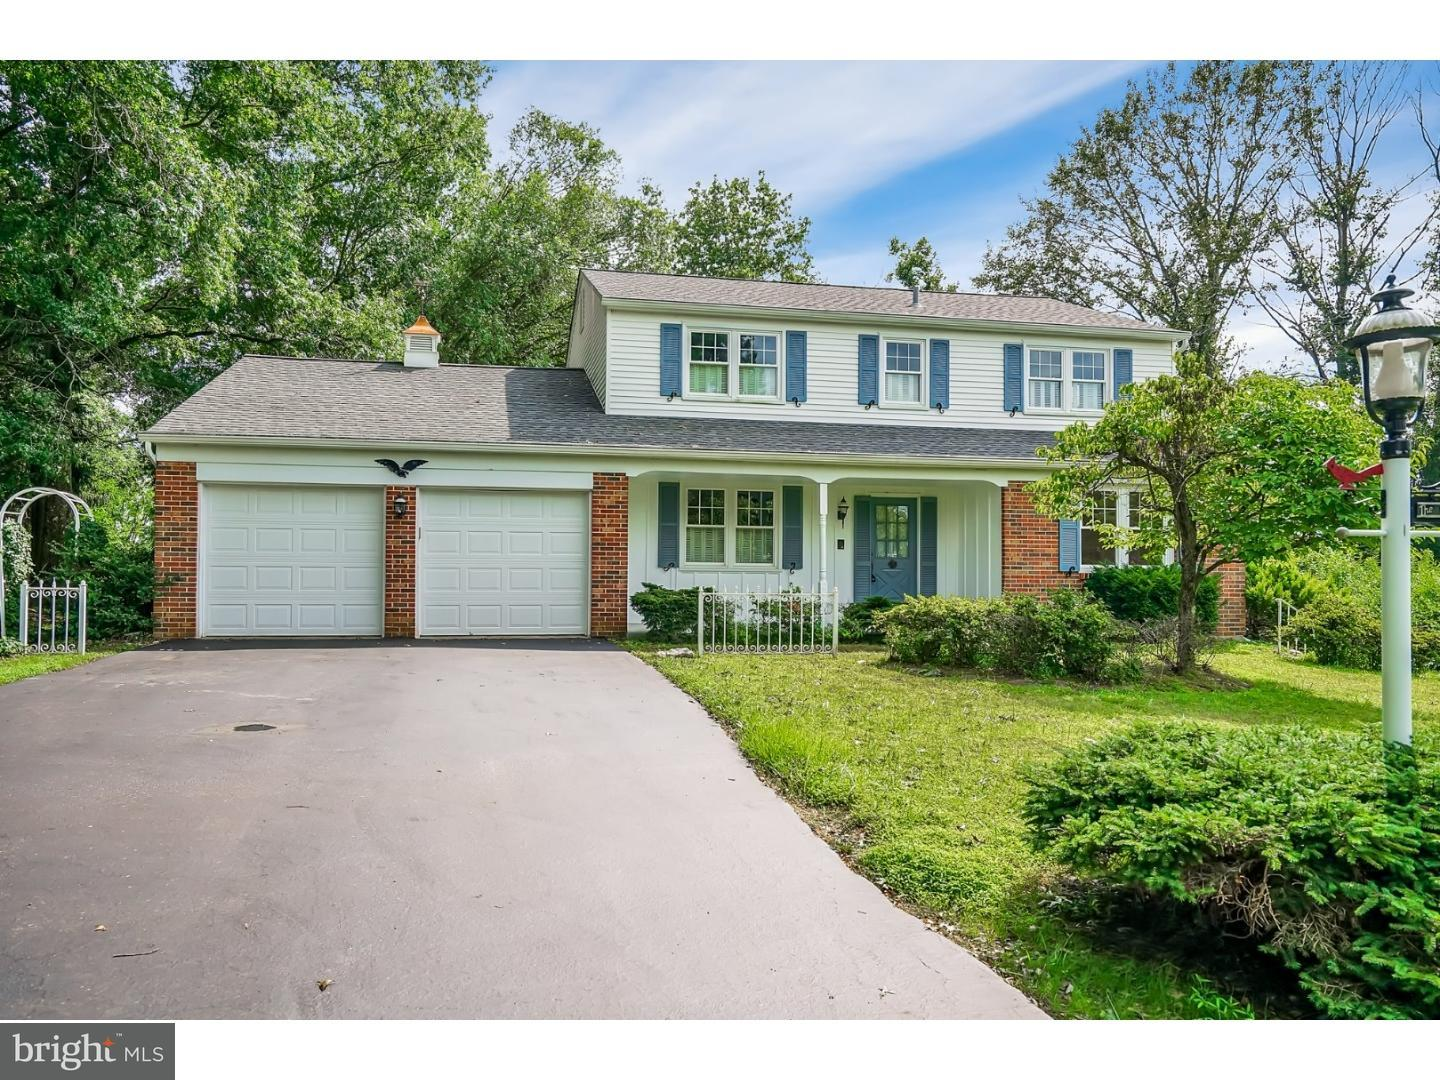 Homes For Sale Rose Lane Haverford Pa